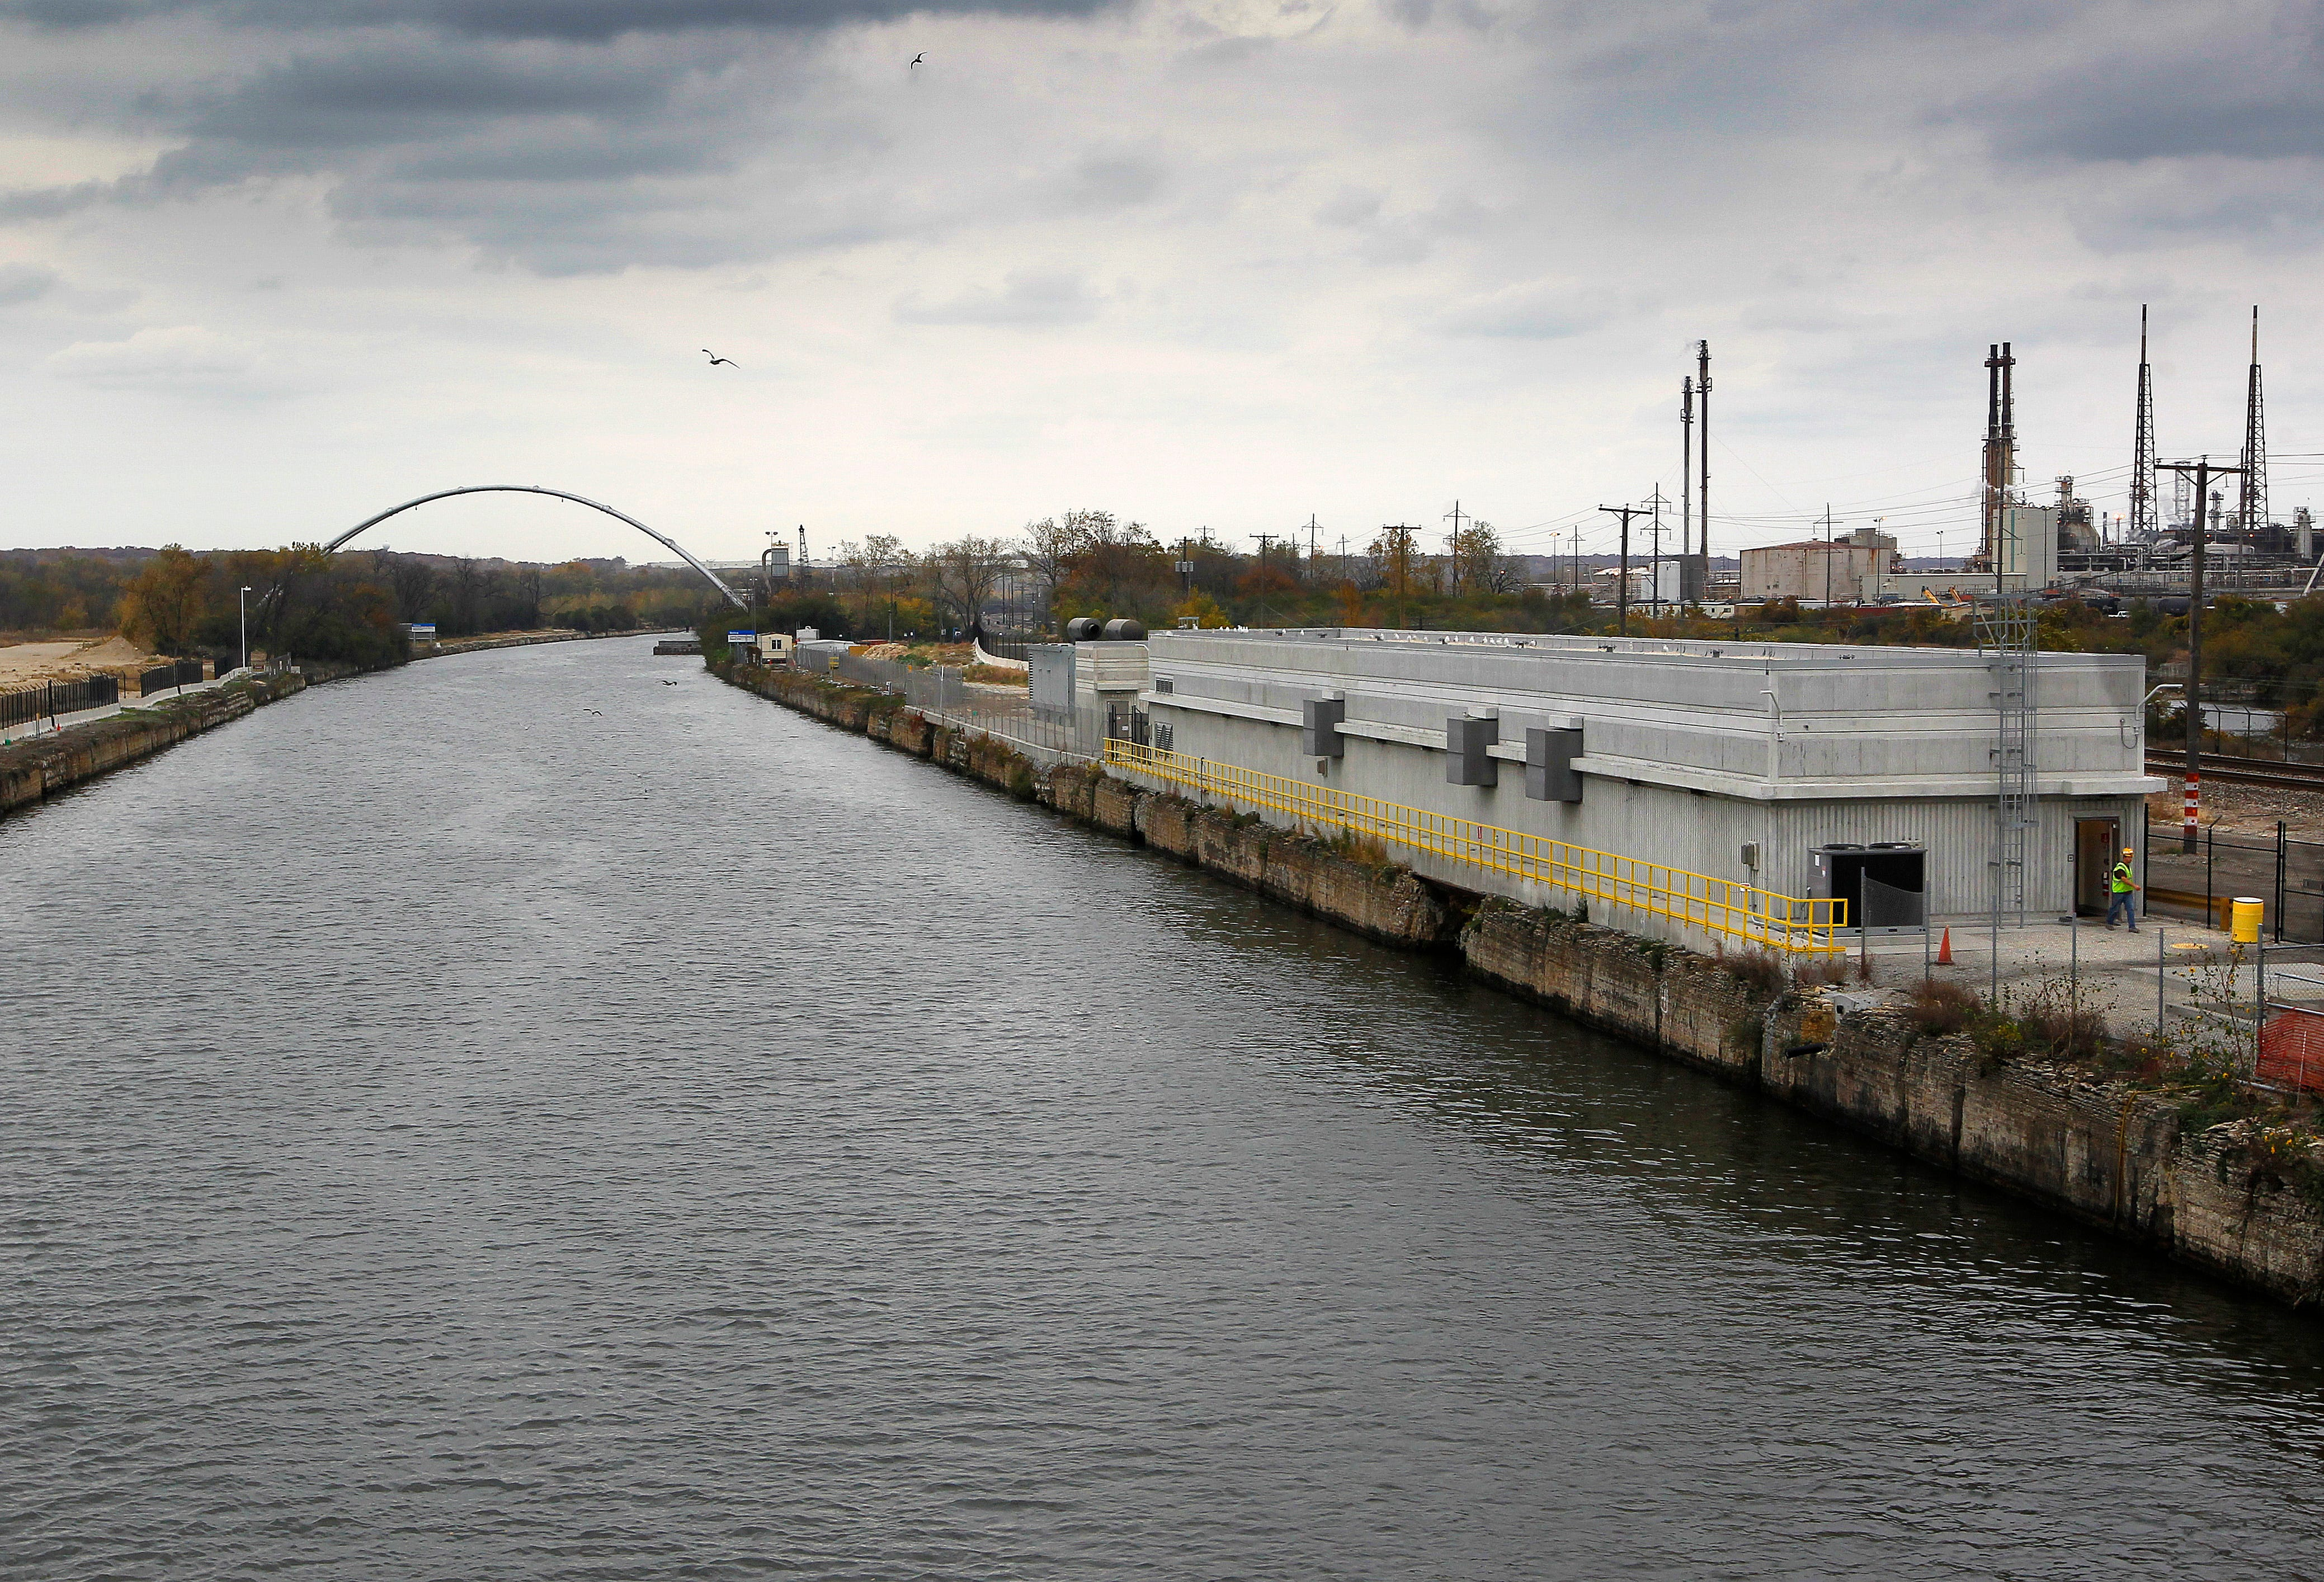 RIVER PLUG, NWS, PORTER, 8. - The Electric Ship Barrier, right, is designed to stop the movement of Asian Carp towards the Great Lakes. The highly industrialized Chicago Sanitary and Ship Canal is the major access for shipping for some industries along it's banks. There is a controversial plan that could involve plugging the canal to halt the spread of the invasive Asian Carp to the Great Lakes through the canal, that could interrupt or stop barge traffic. October 17, 2012. GARY PORTER/GPORTER@JOURNALSENTINEL.COM